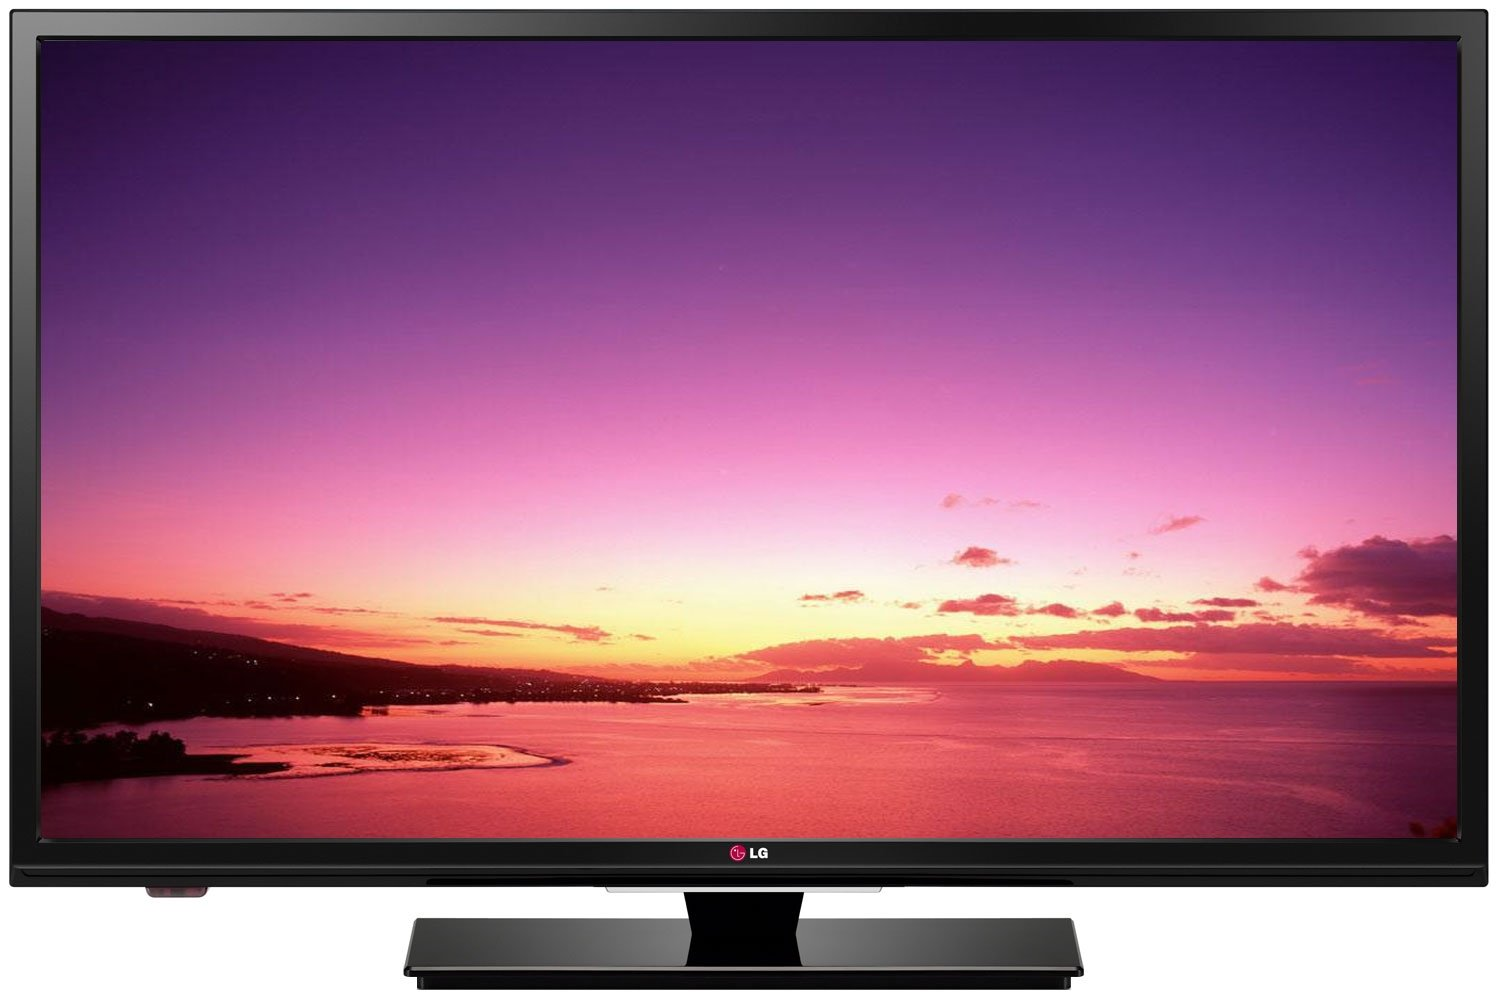 LG-Electronics-32LB520B-32-Inch-720p-60Hz-LED-TV